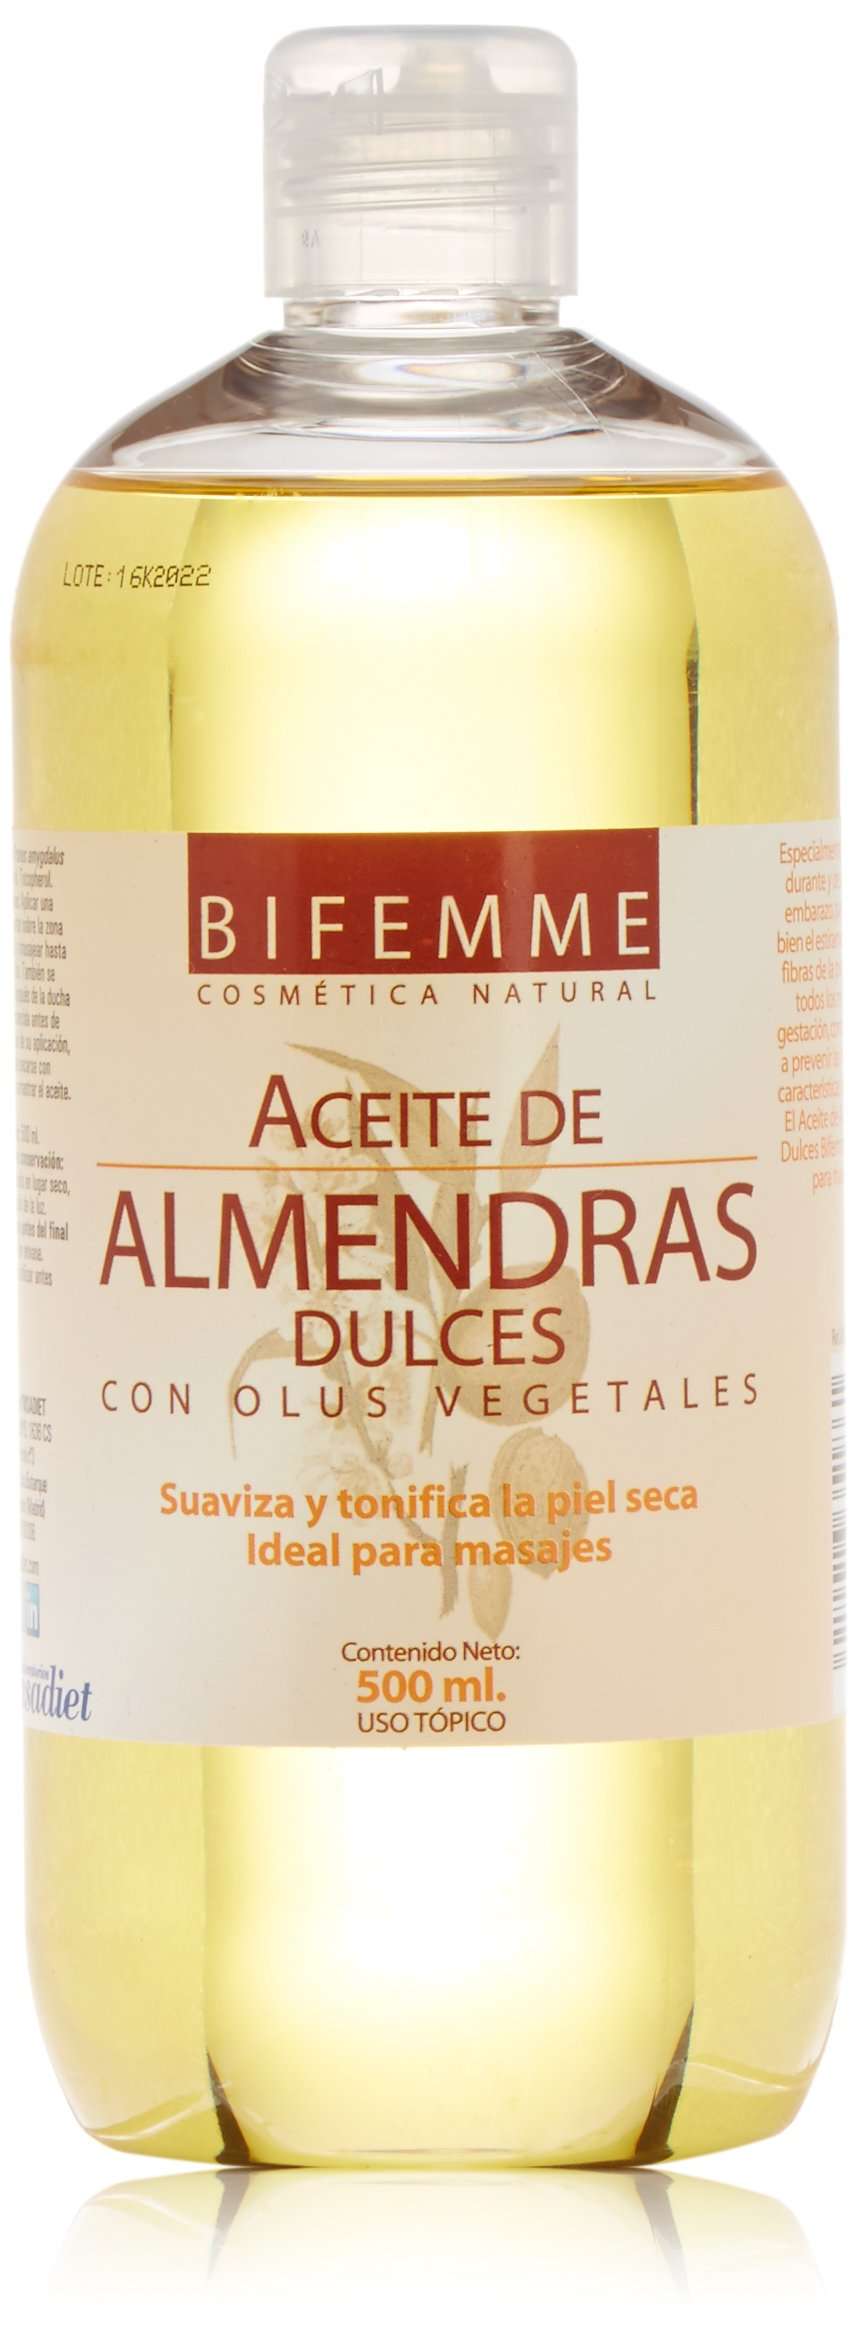 Bifemme Aceite almendras dulces - 500 ml product image